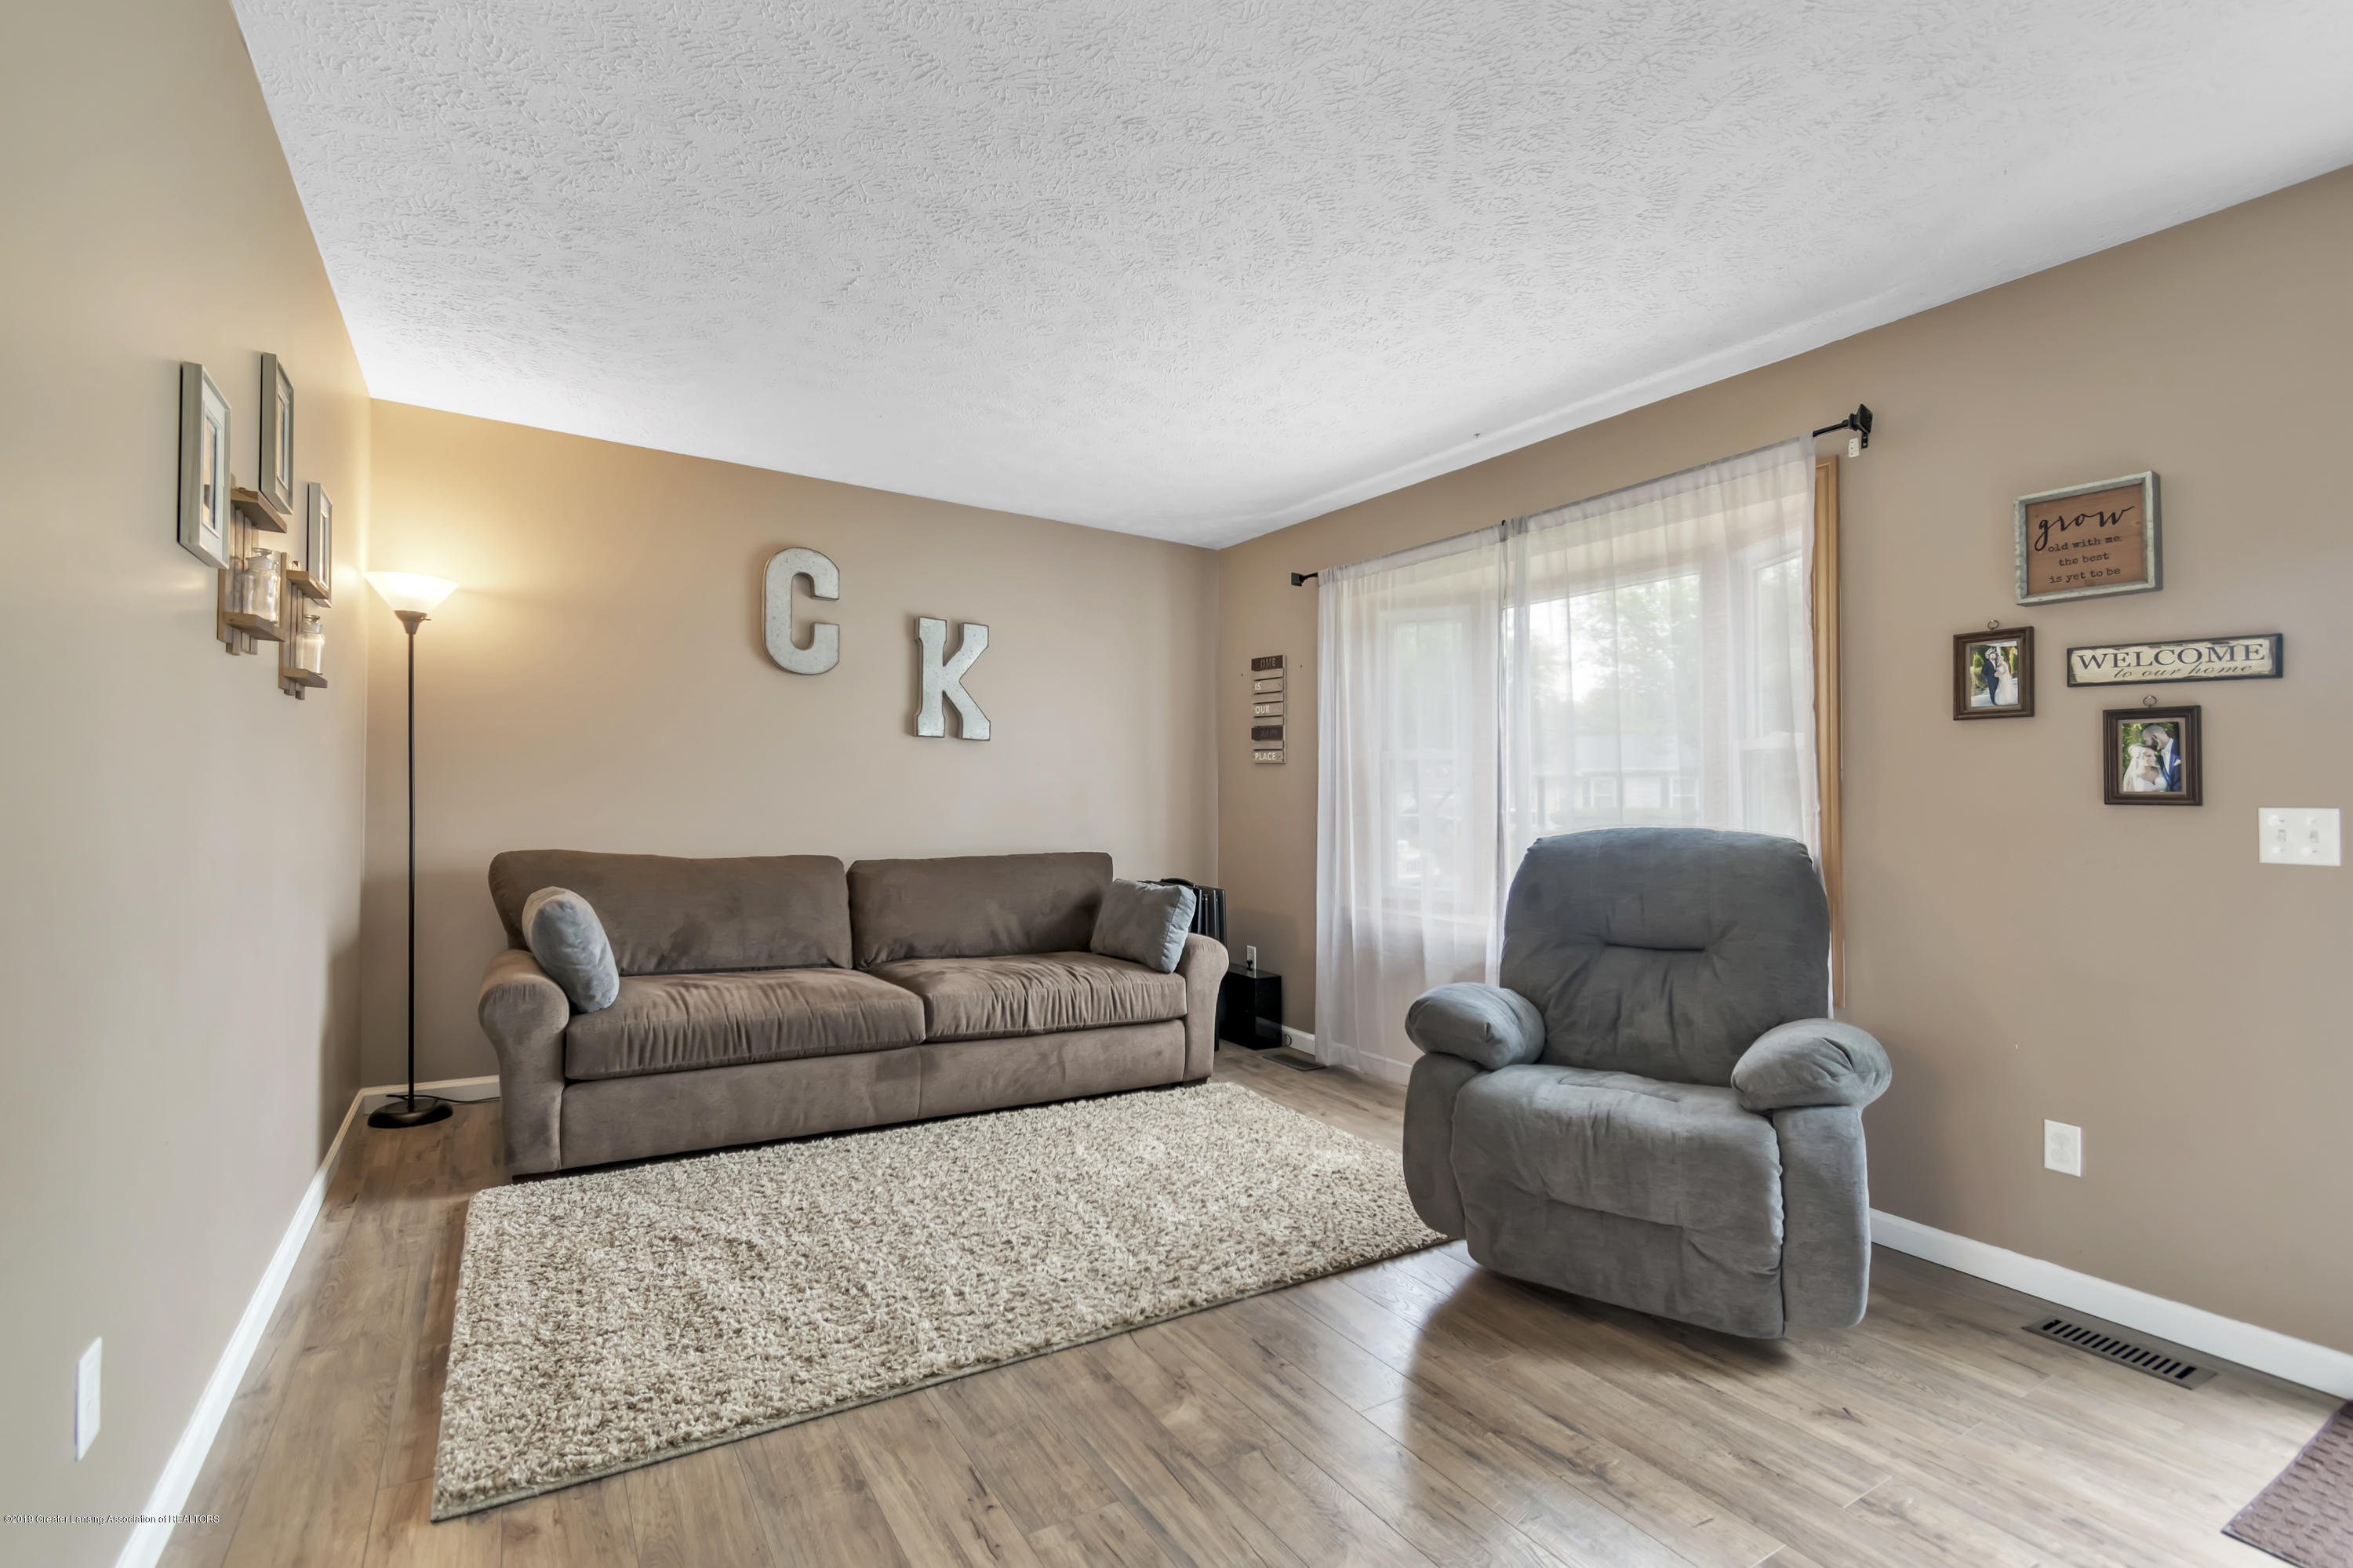 5736 Coulson Ct - 5736-Coulson-Ct-Lansing-MI-windowstill-8 - 7